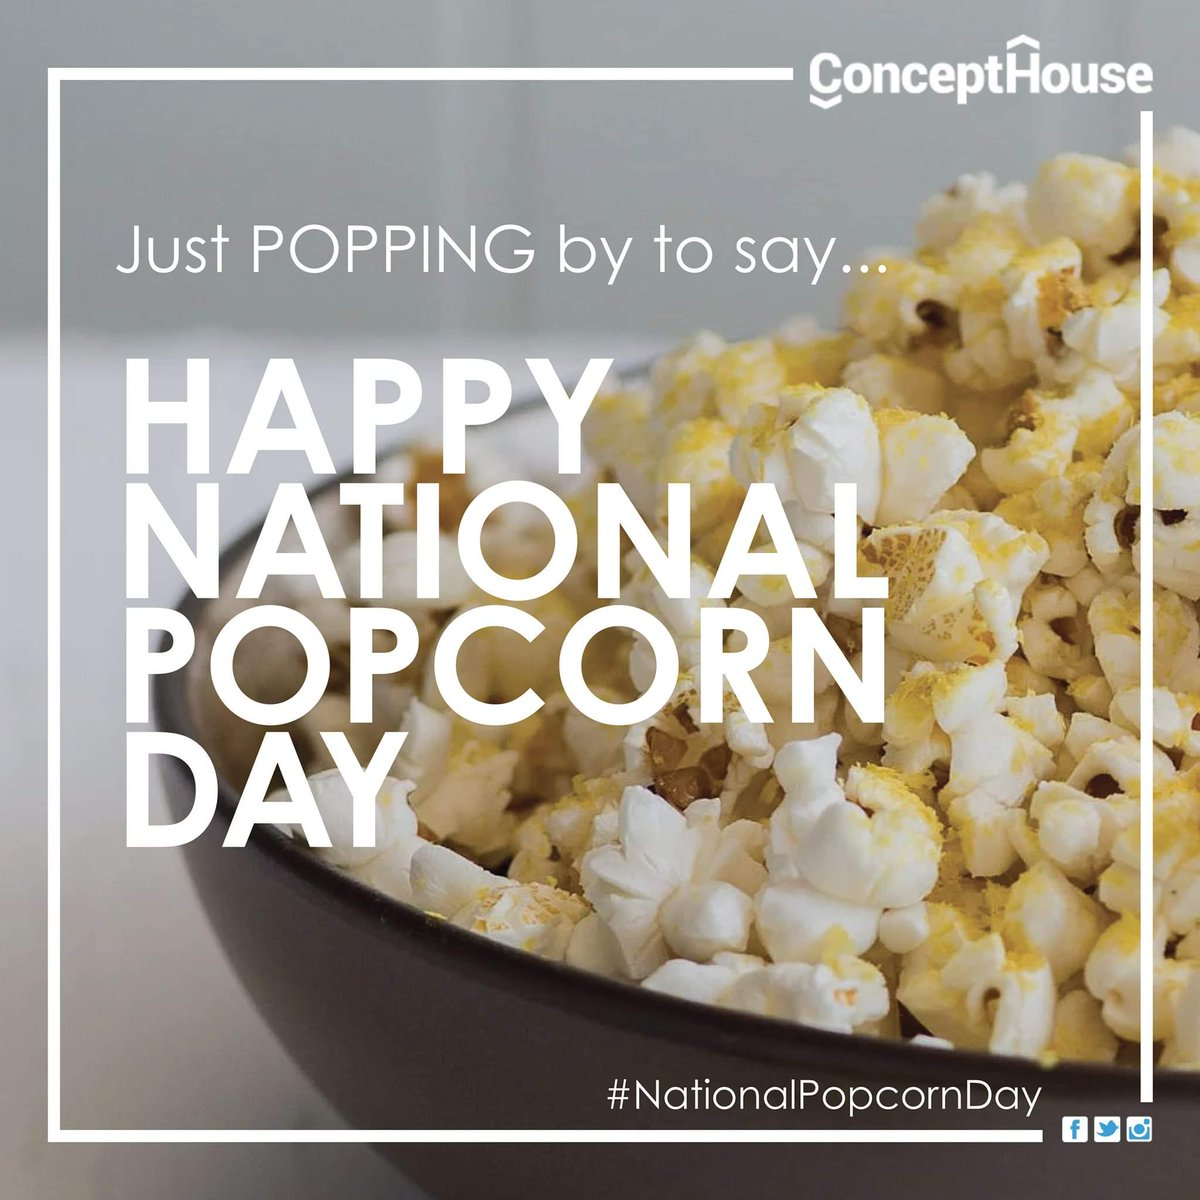 I prefer my popcorn with just a pinch salt n butter, but you can never go wrong with kettle corn either. How do you like your popcorn?  #NationalPopcornDay #tuesdayvibe  #tuesdaymood #Atlanta #graphicdesign #smallbusiness #January #digitalmarketing #marketing #marketingstrategy